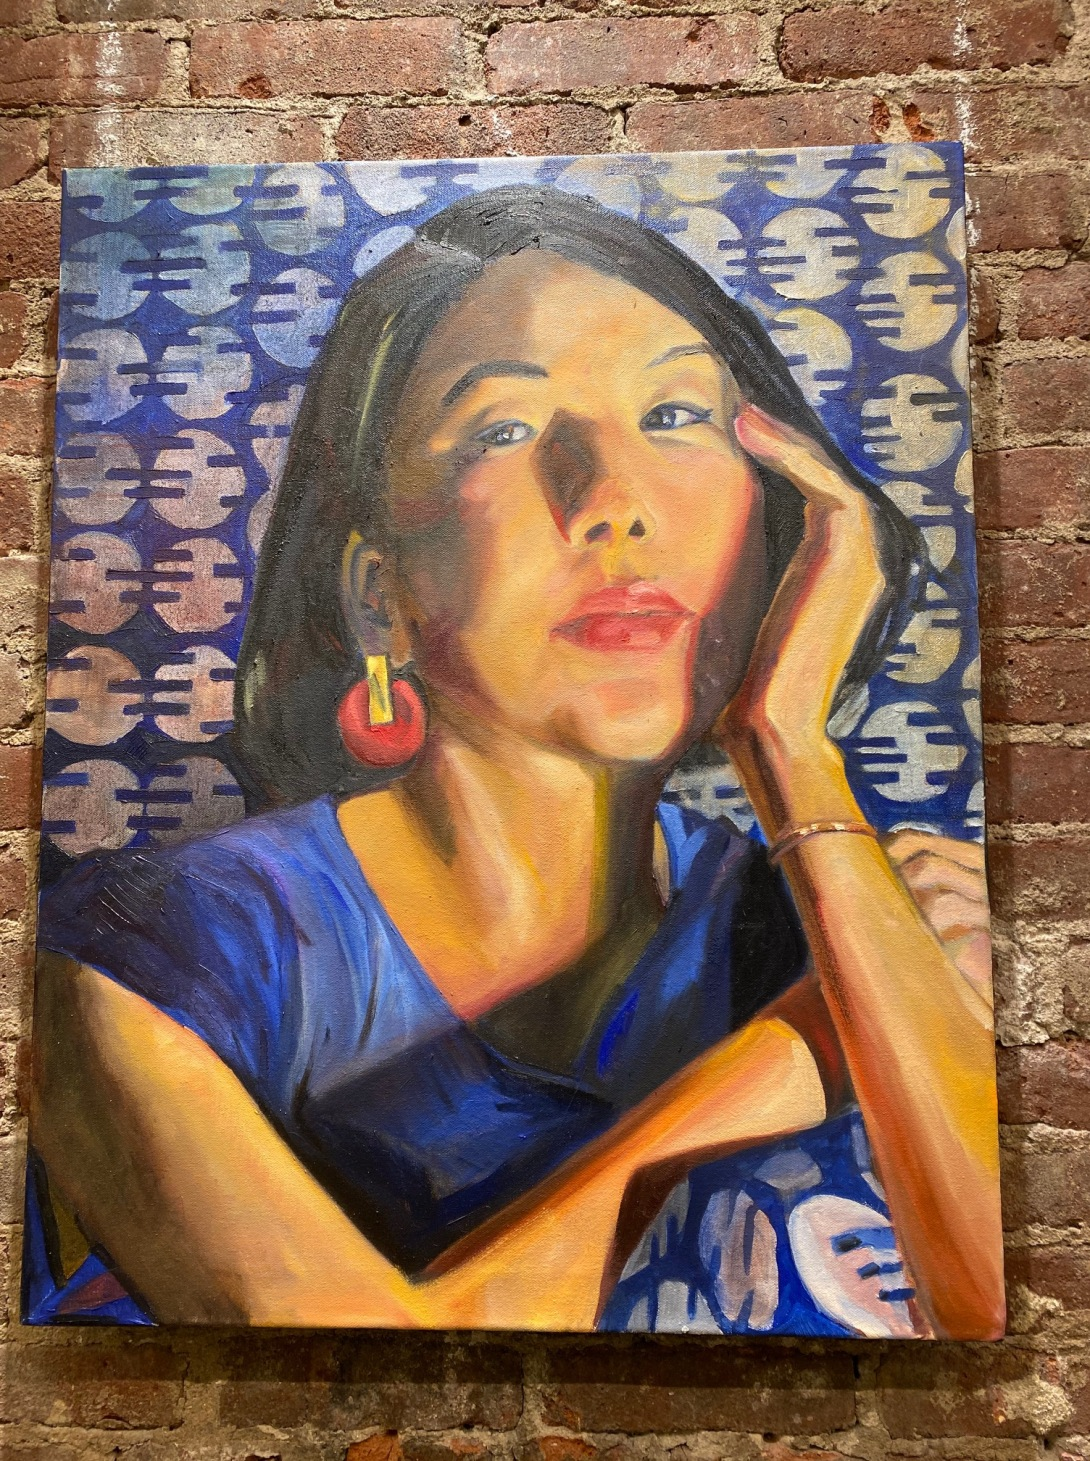 Image of an Asian woman painted against a blue and white pattern backgroundby artist Marguerite Wibaux